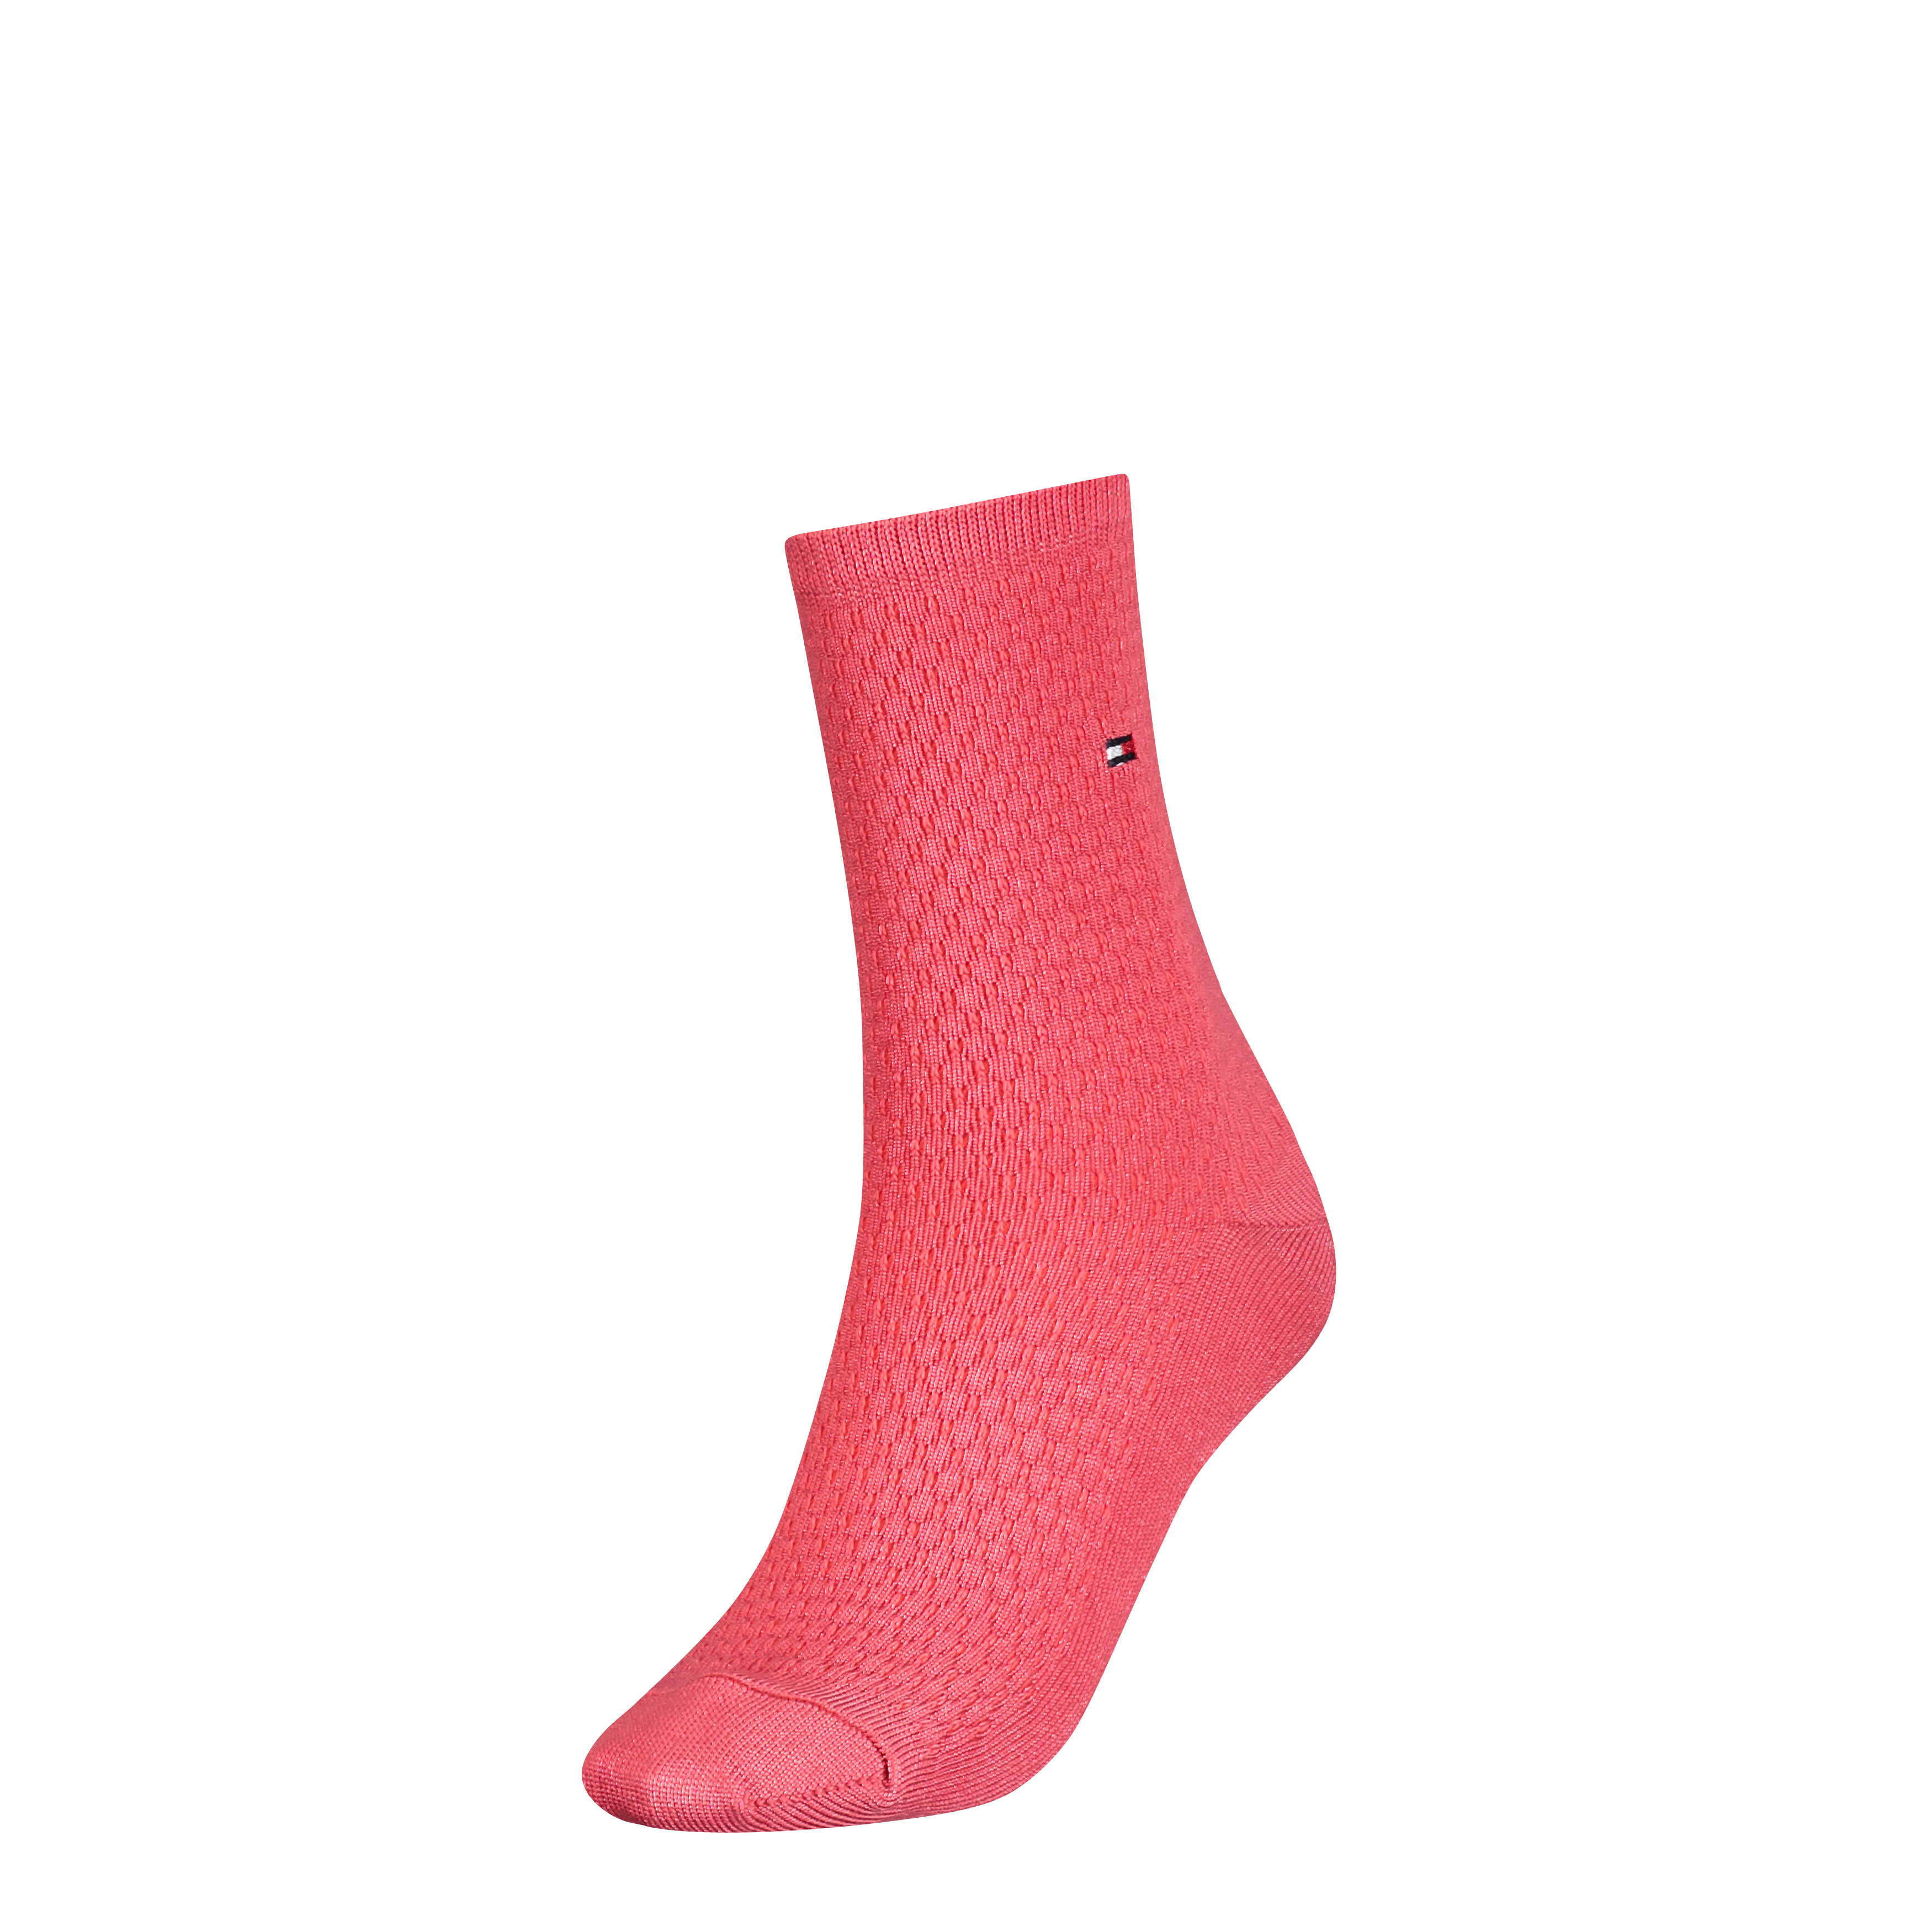 "Socken ""Honeycomp Woman"" 1P"